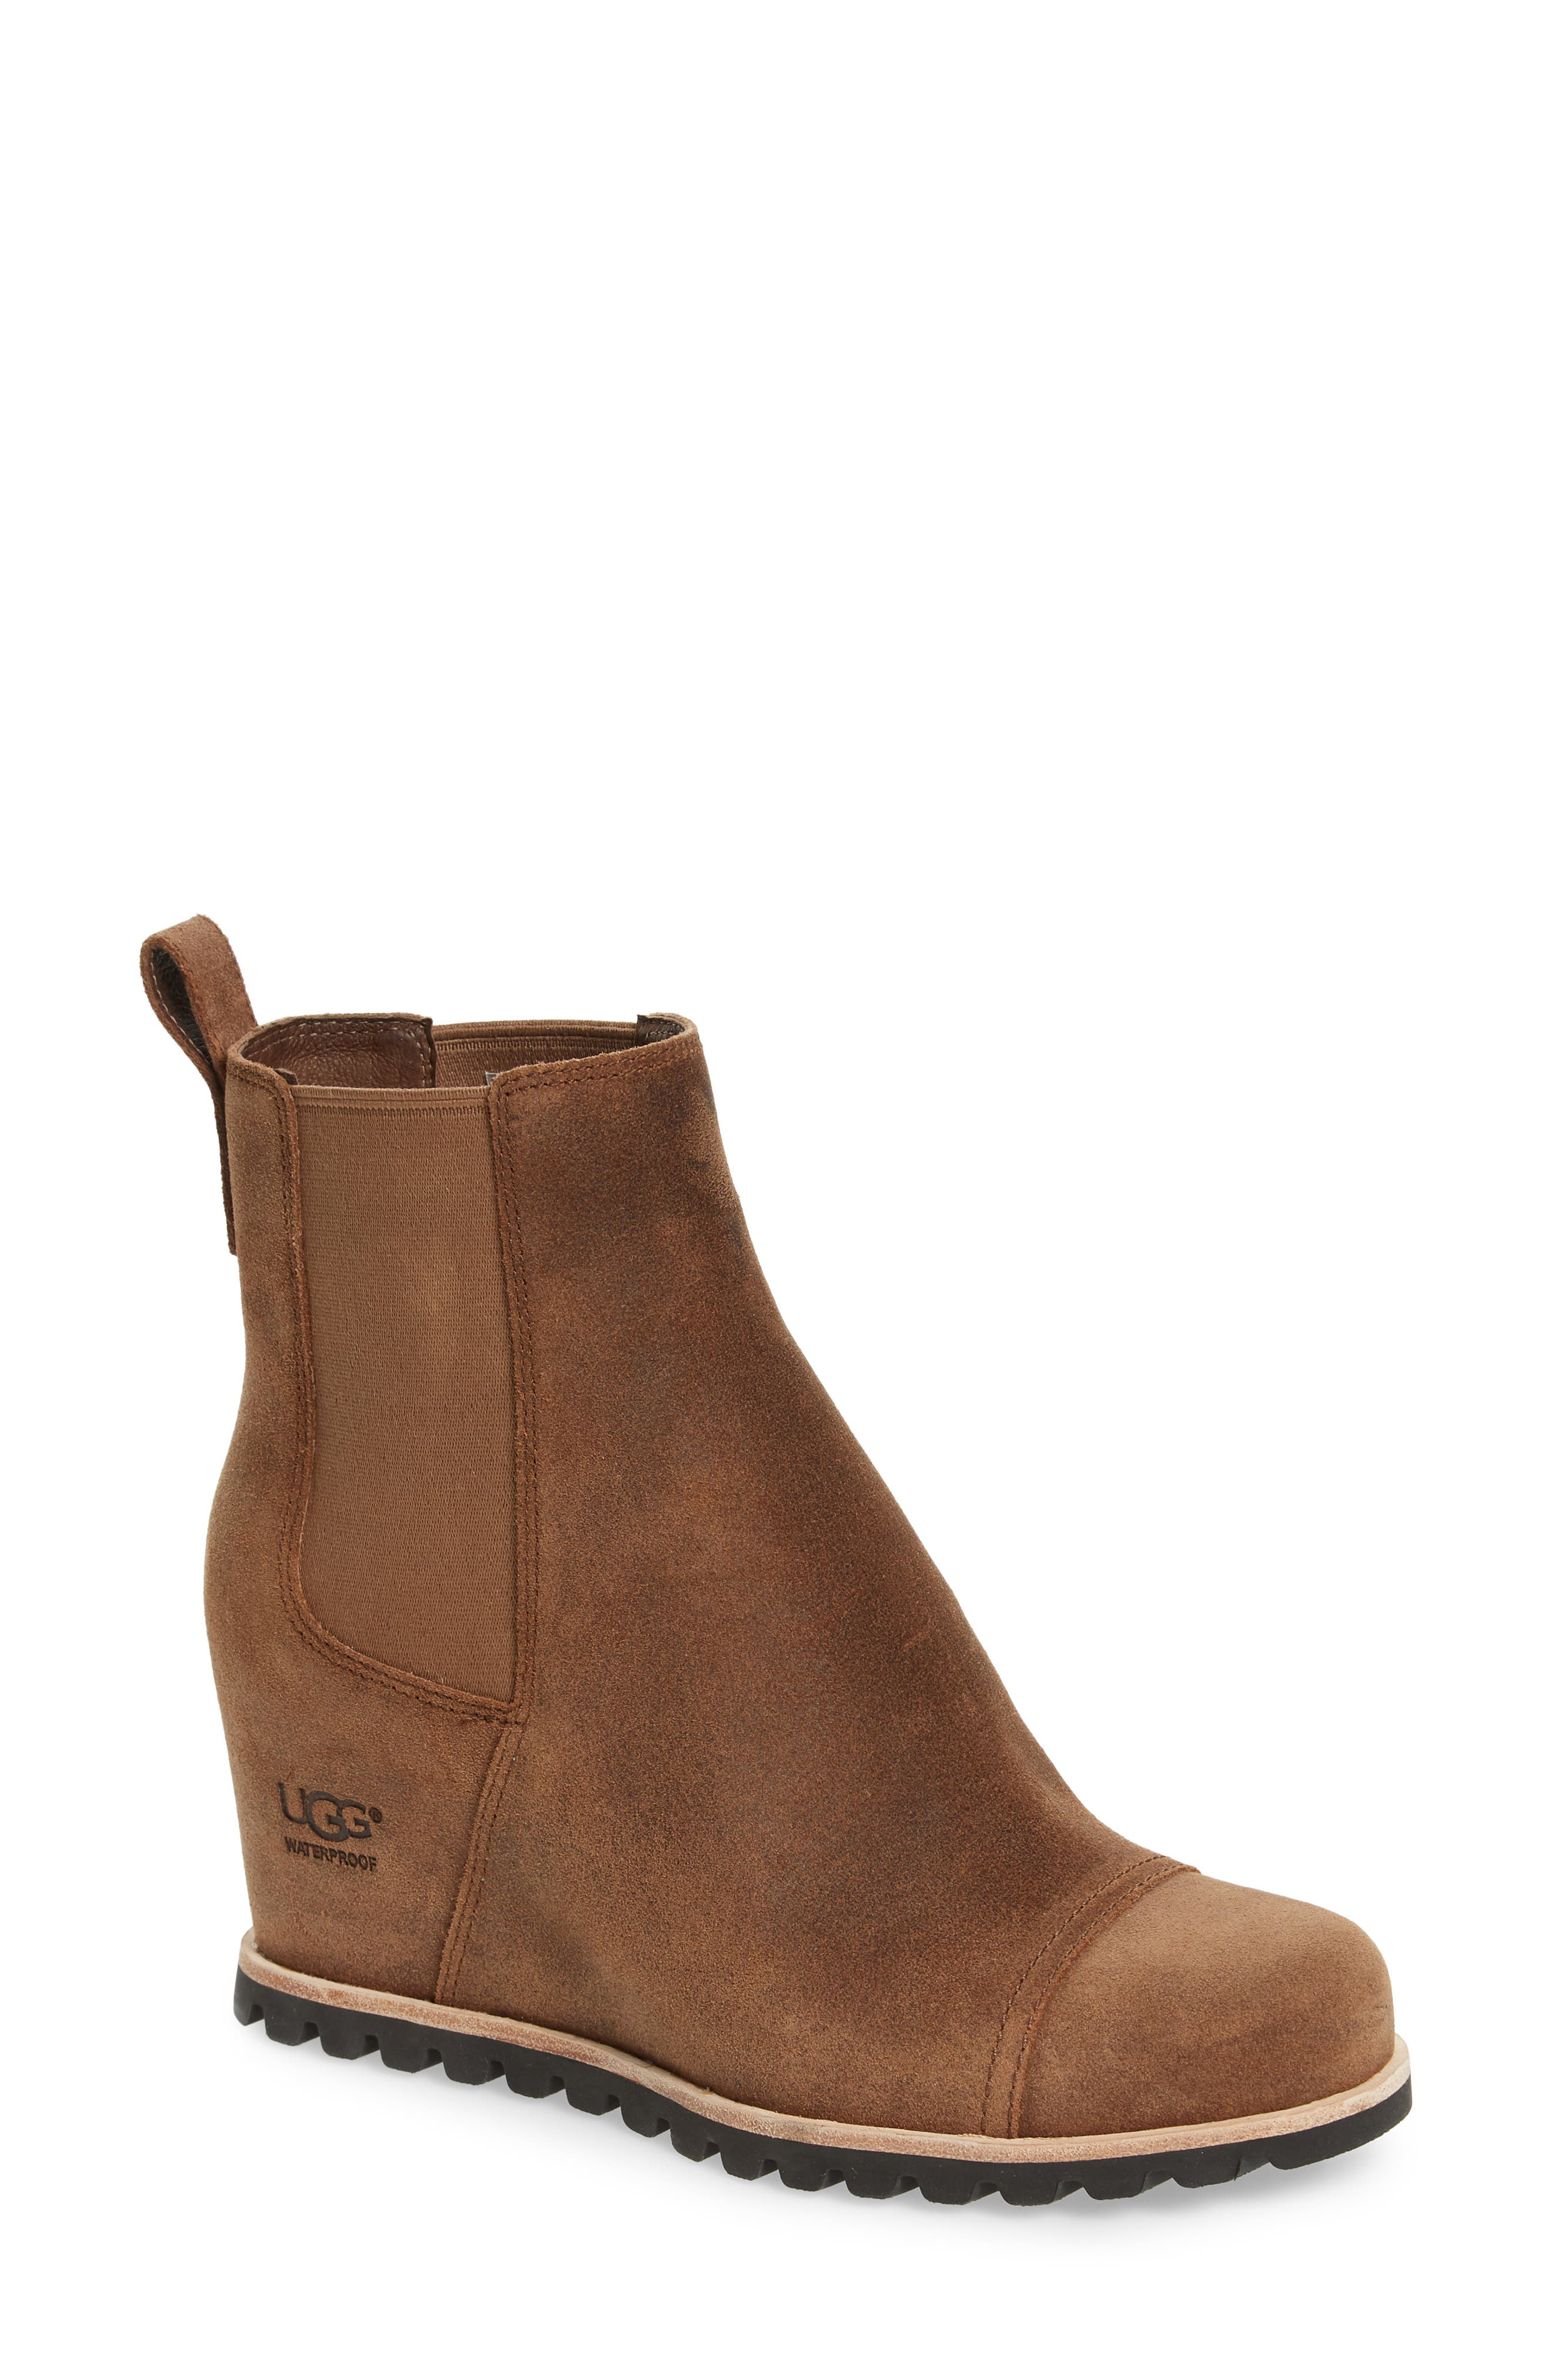 Pax Waterproof Wedge Boot,                             Main thumbnail 1, color,                             CHIPMUNK LEATHER